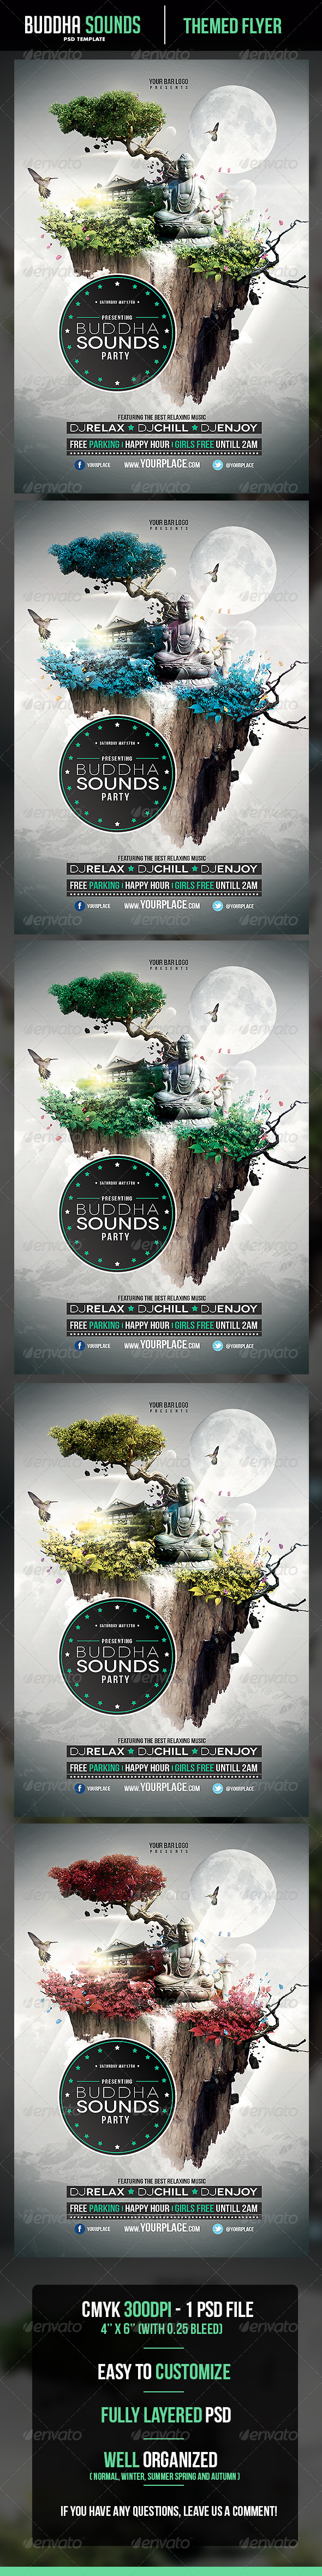 GraphicRiver Buddha Sounds Flyer Template 5069142